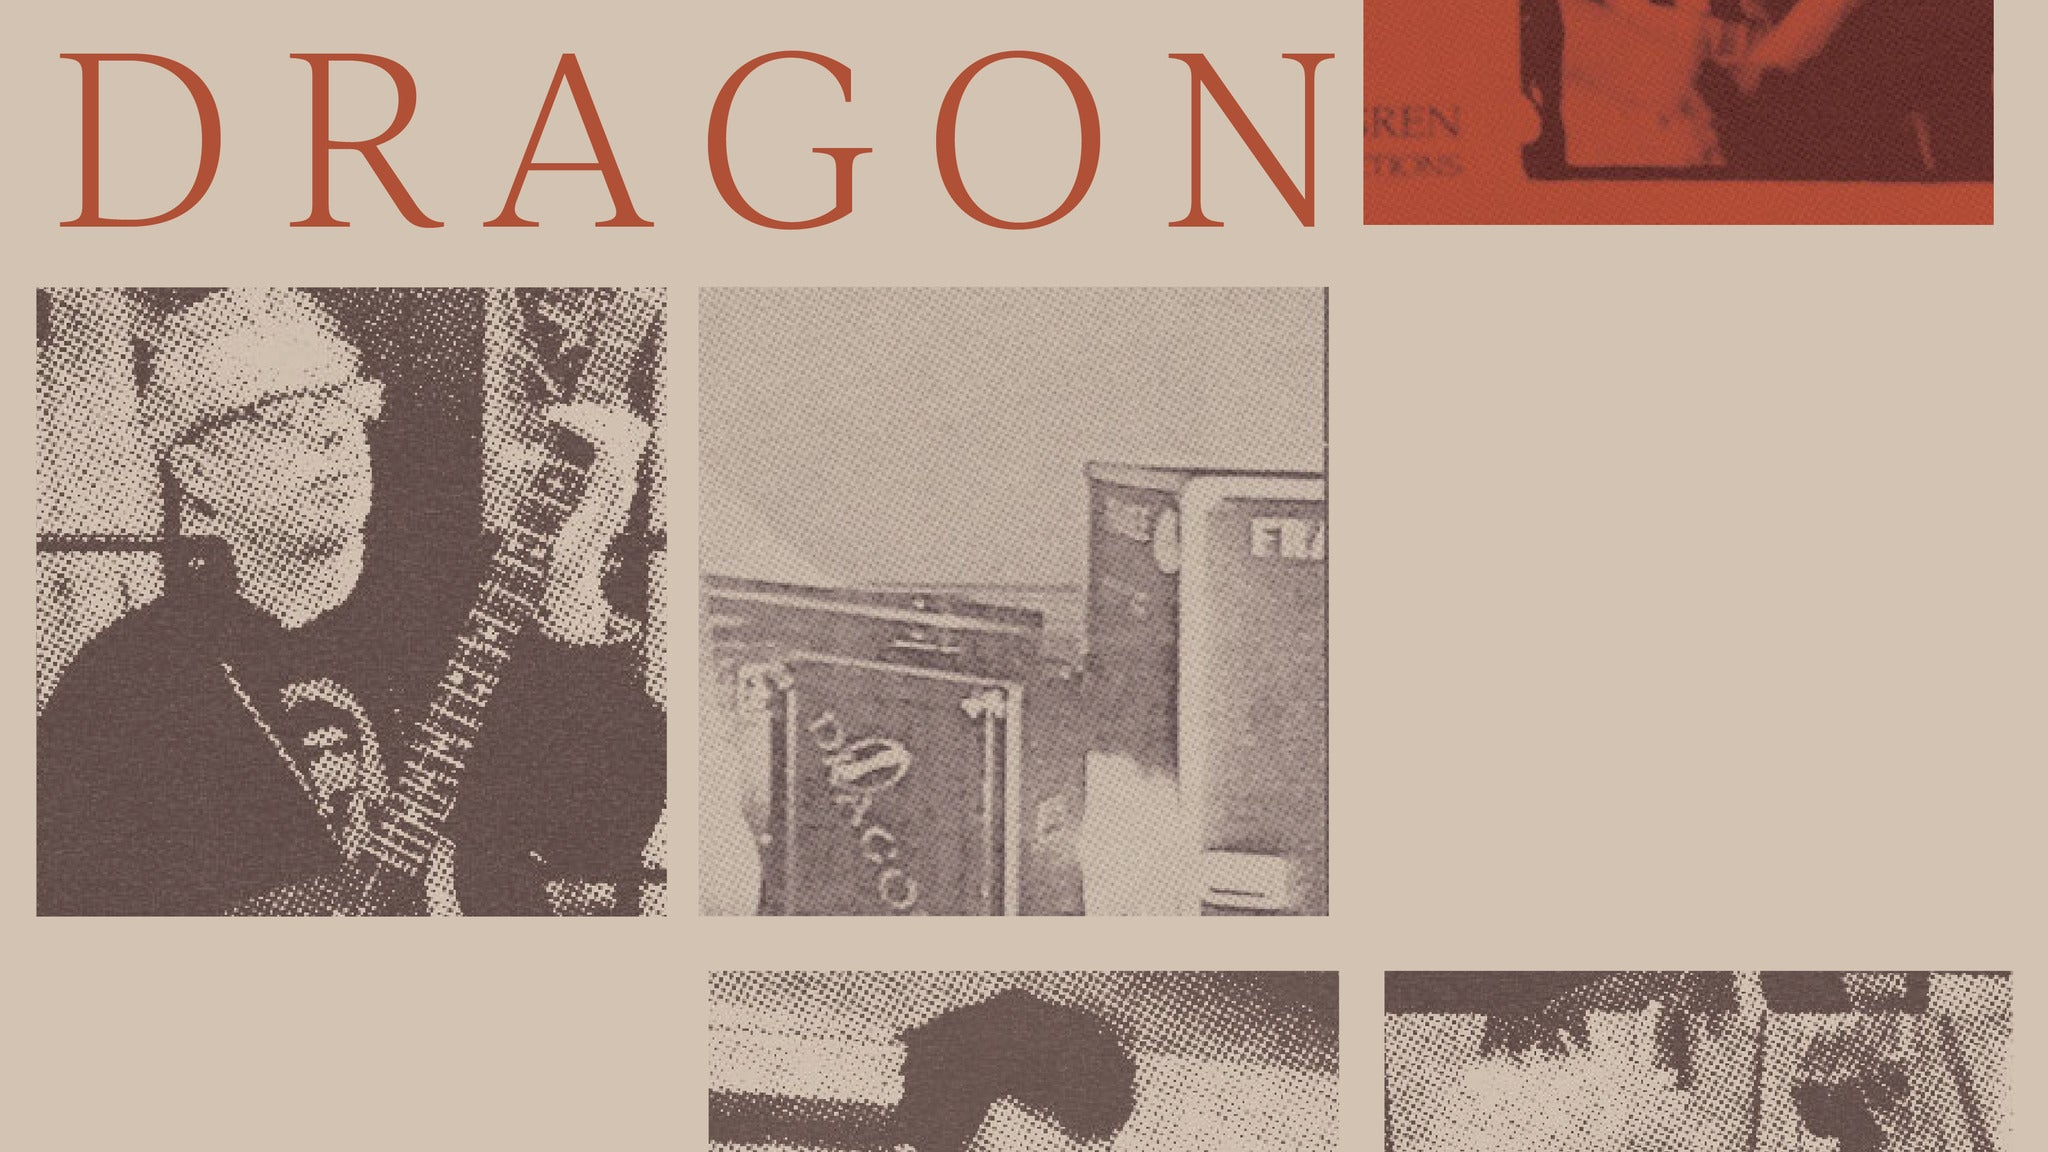 Image used with permission from Ticketmaster | Dragon tickets